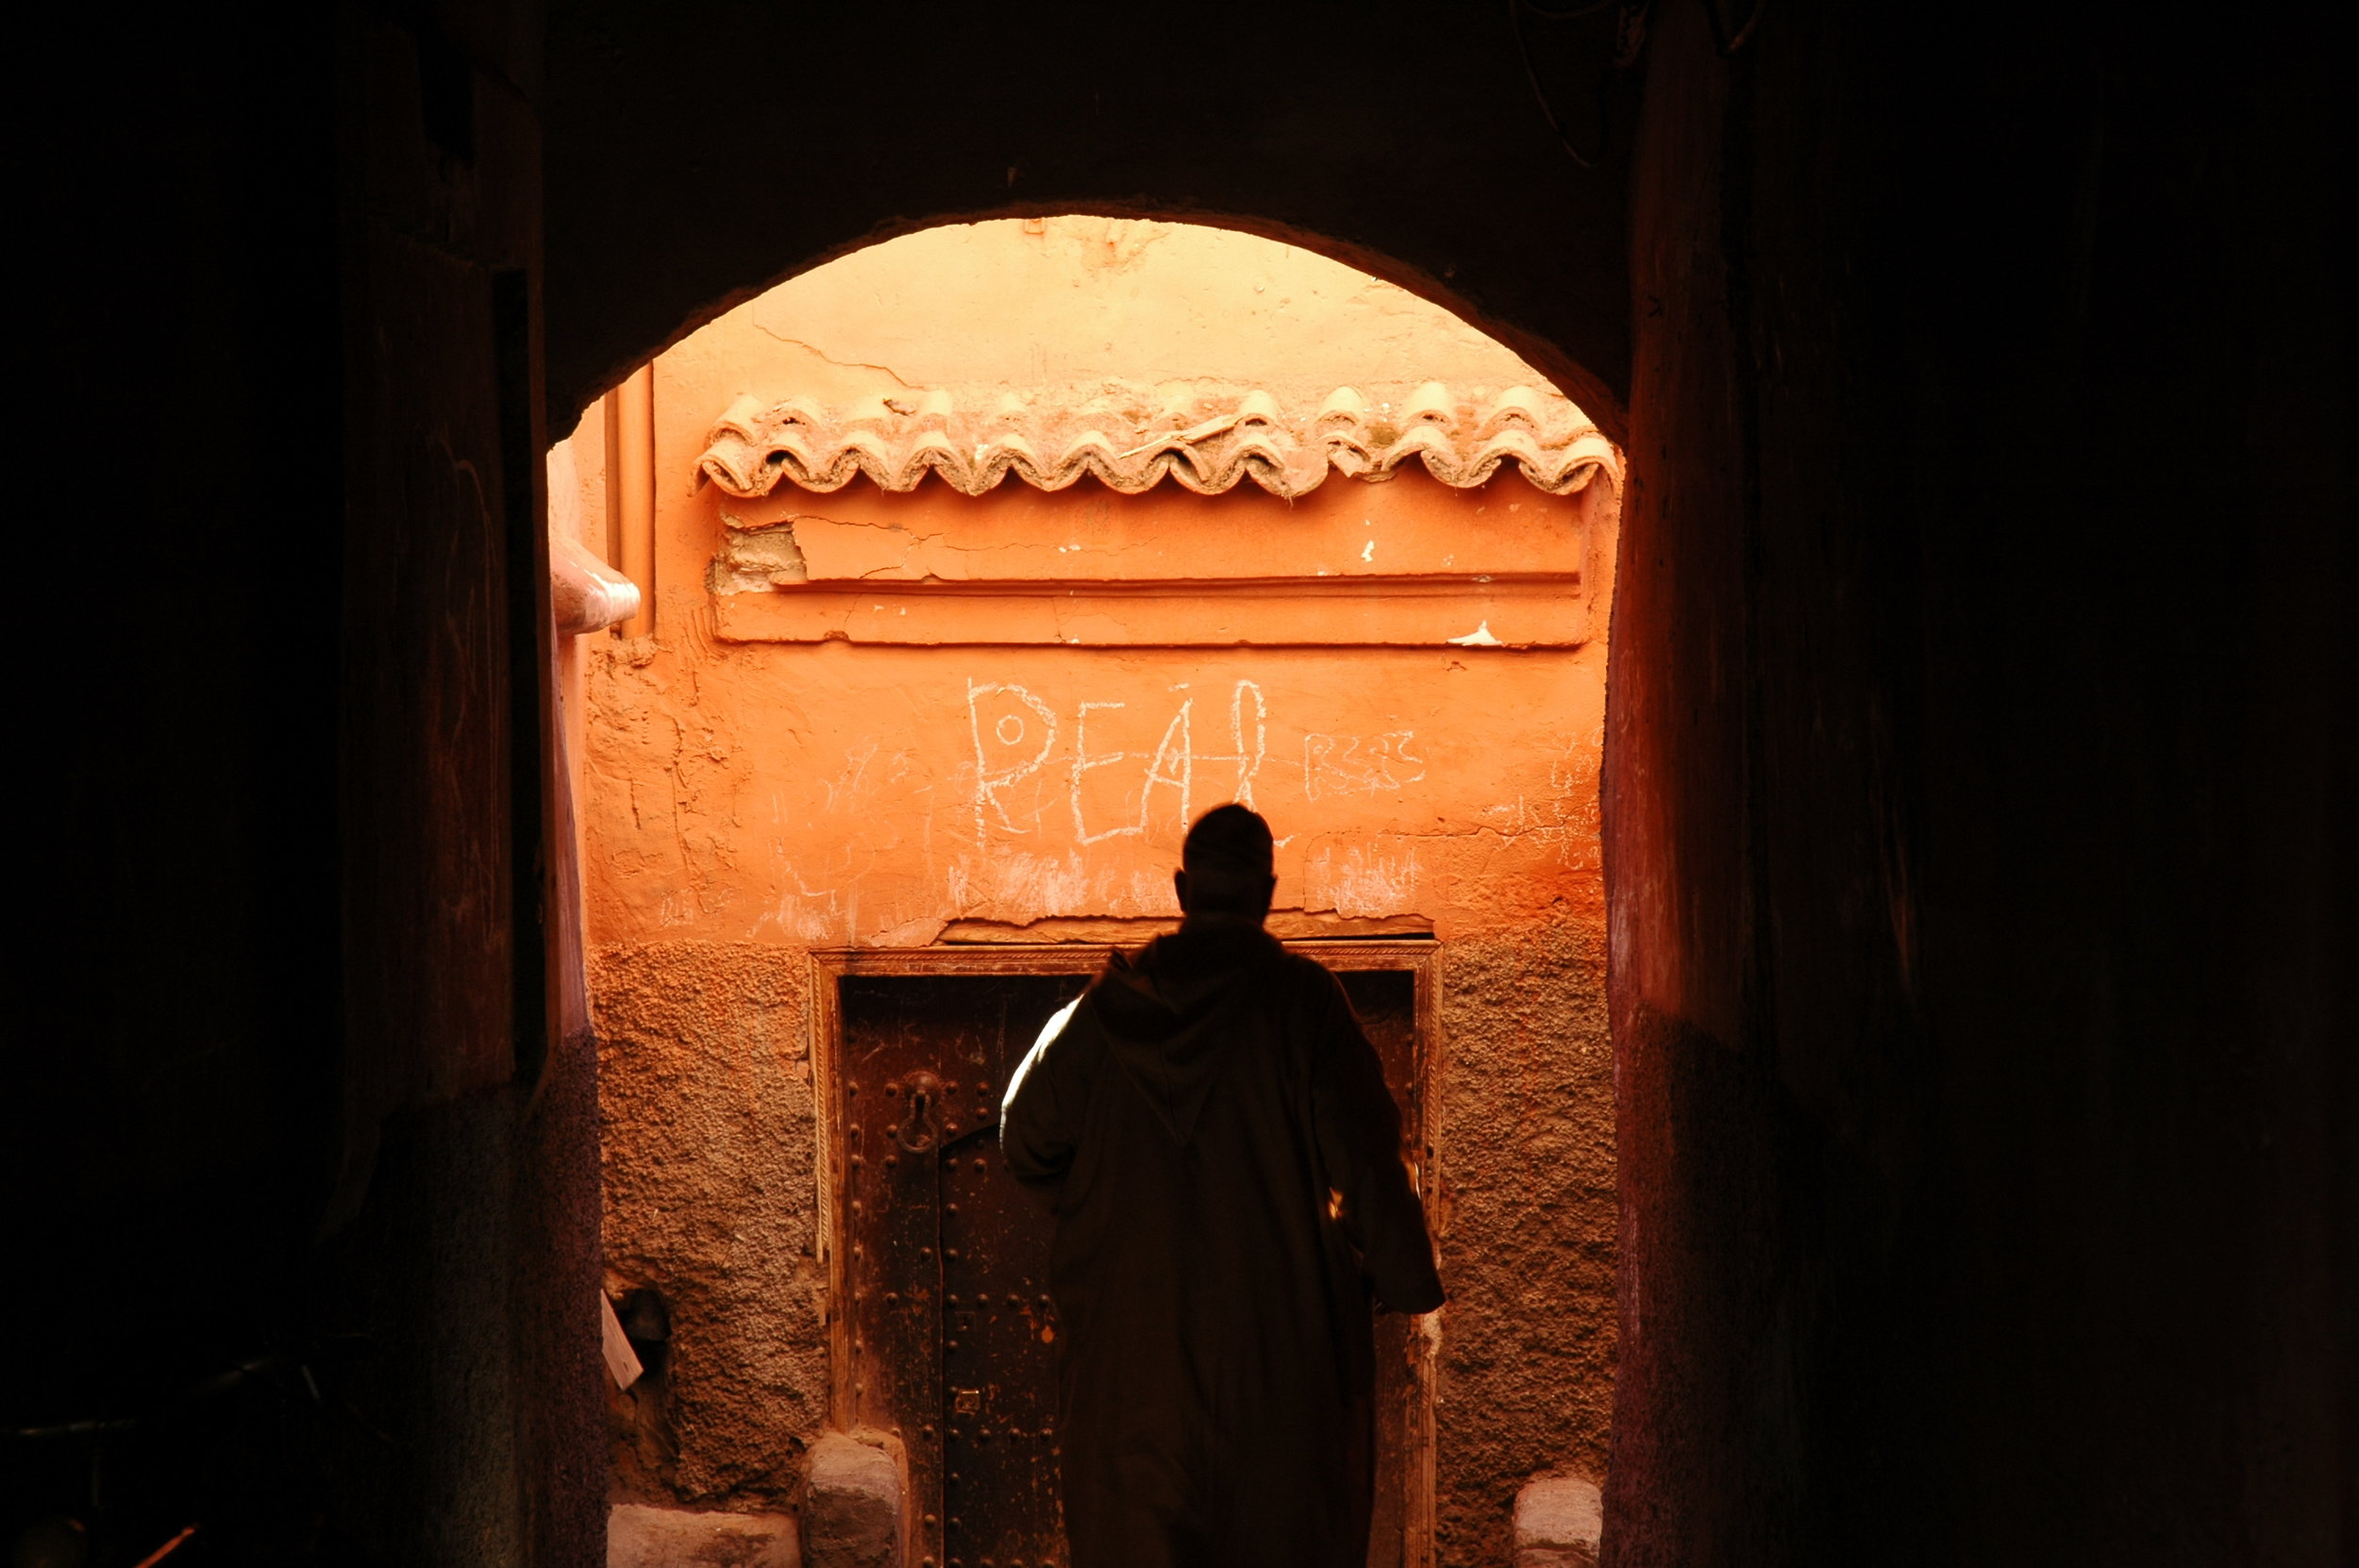 It's like navigating a maze in the passage ways and small streets of the medina in Marrakesh